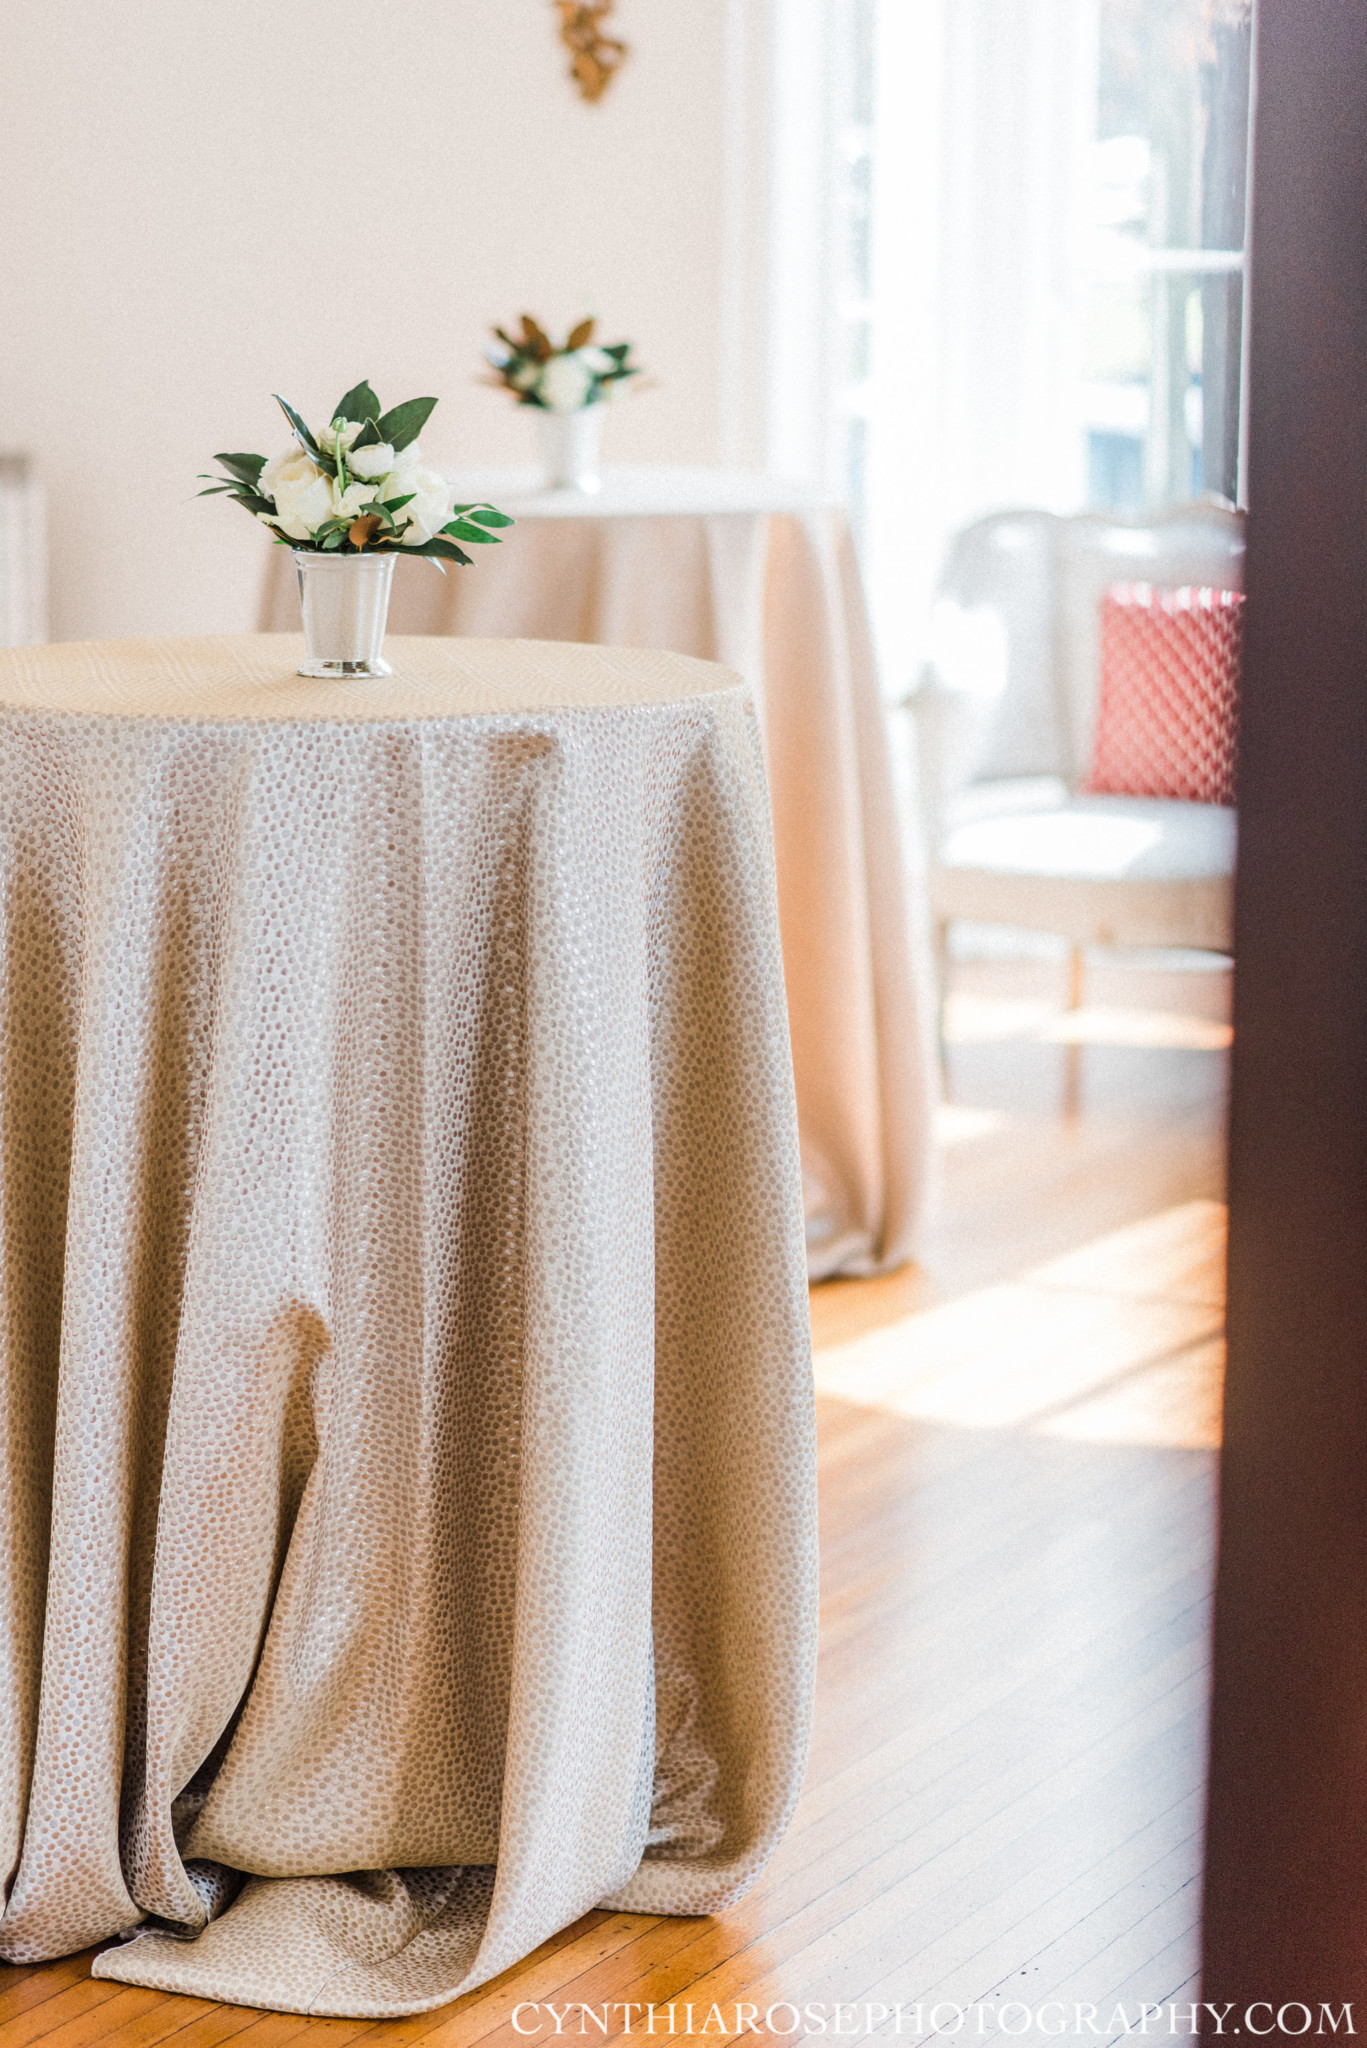 Planning:  La Fête   Photography: Cynthia Rose   Florals: Artfully Arranged   Catering: Mitchell's Catering   Rentals: Party Reflections